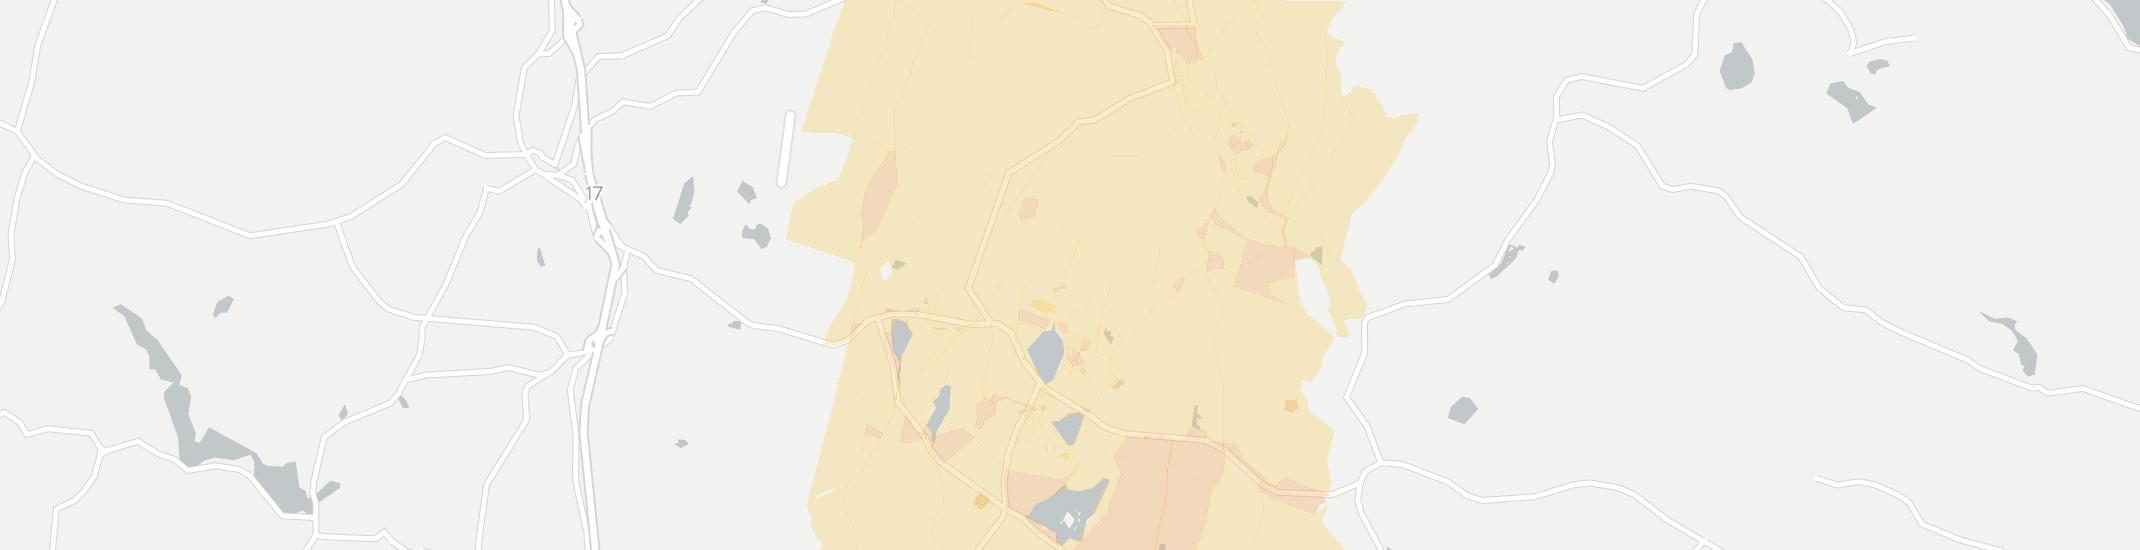 Loch Sheldrake Internet Competition Map. Click for interactive map.